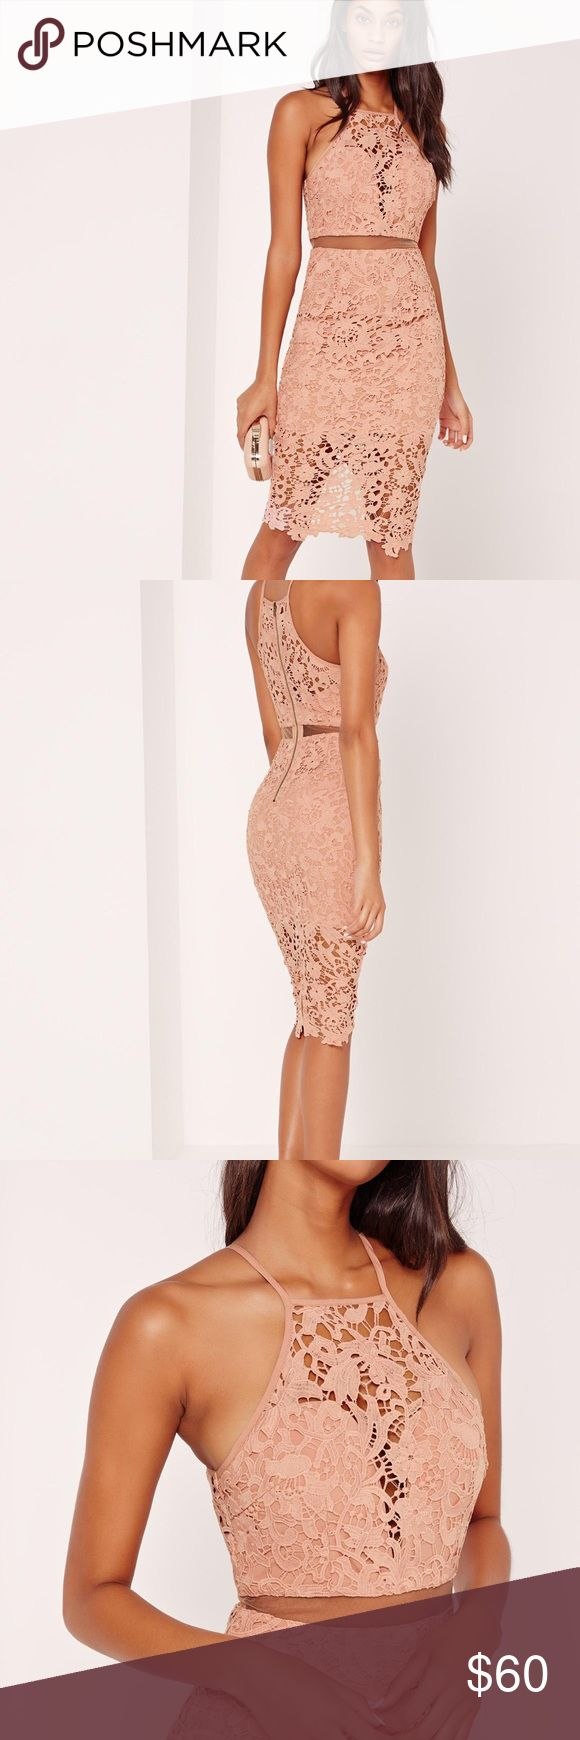 NWT Missguided lace midi dress in nude. Sold out! NWT beautiful and sexy Missguided lace midi dress in nude. Au size 8, us size 2. Sold out! Missguided Dresses Midi